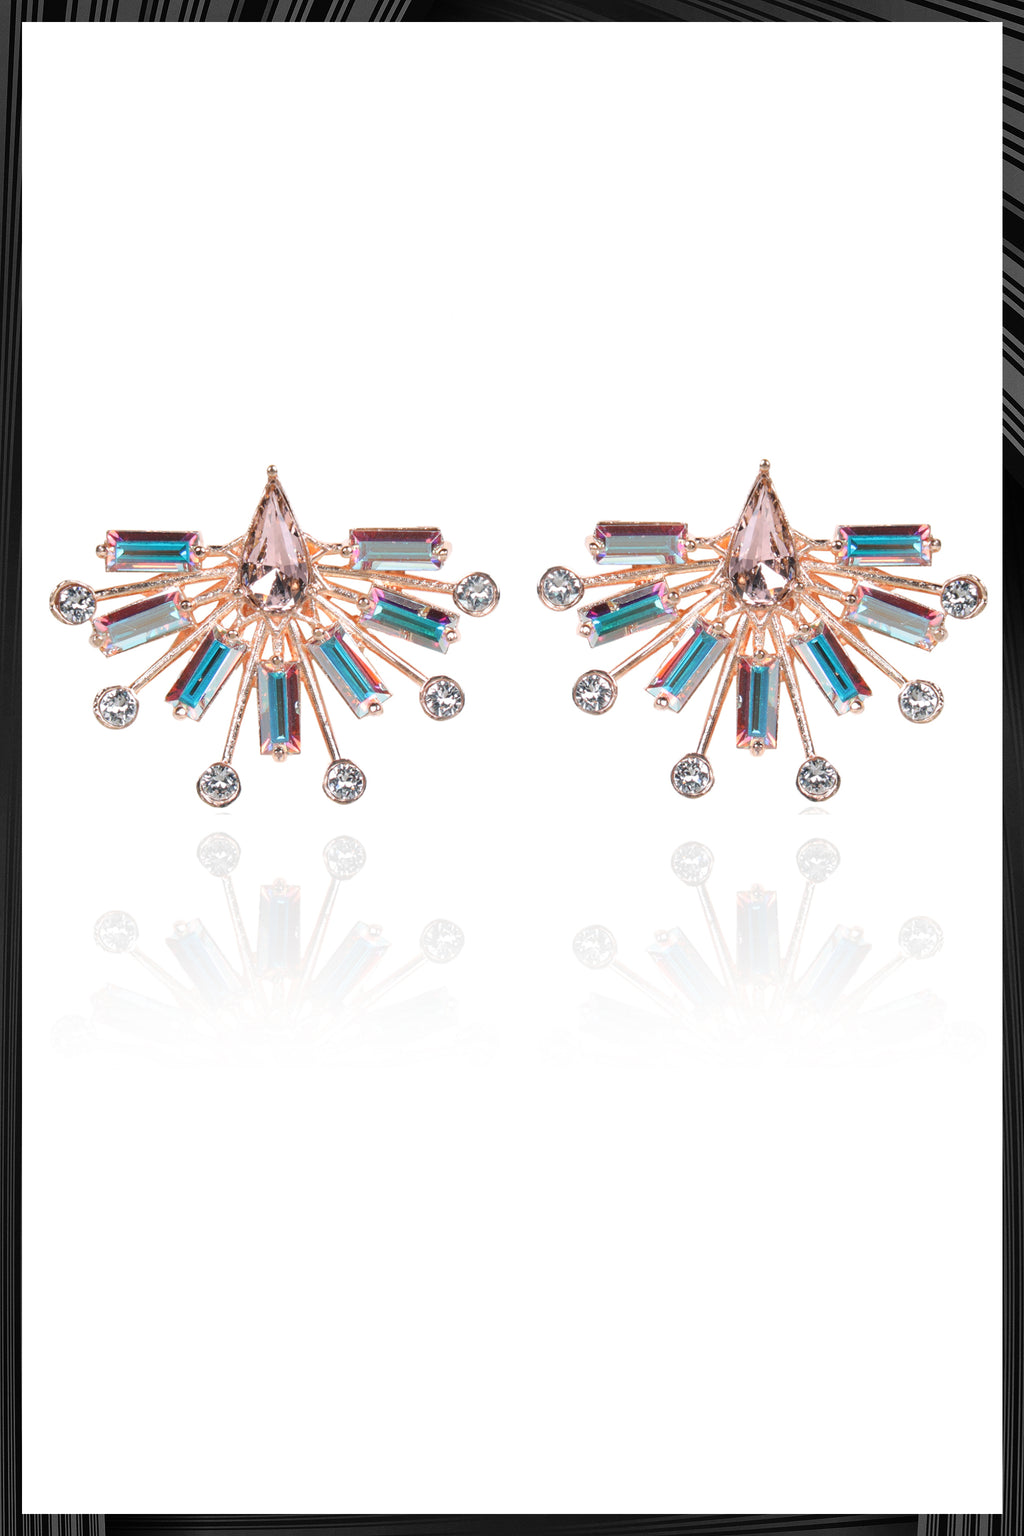 Crystal Bolero Earrings | Free Delivery - Quick Shipping